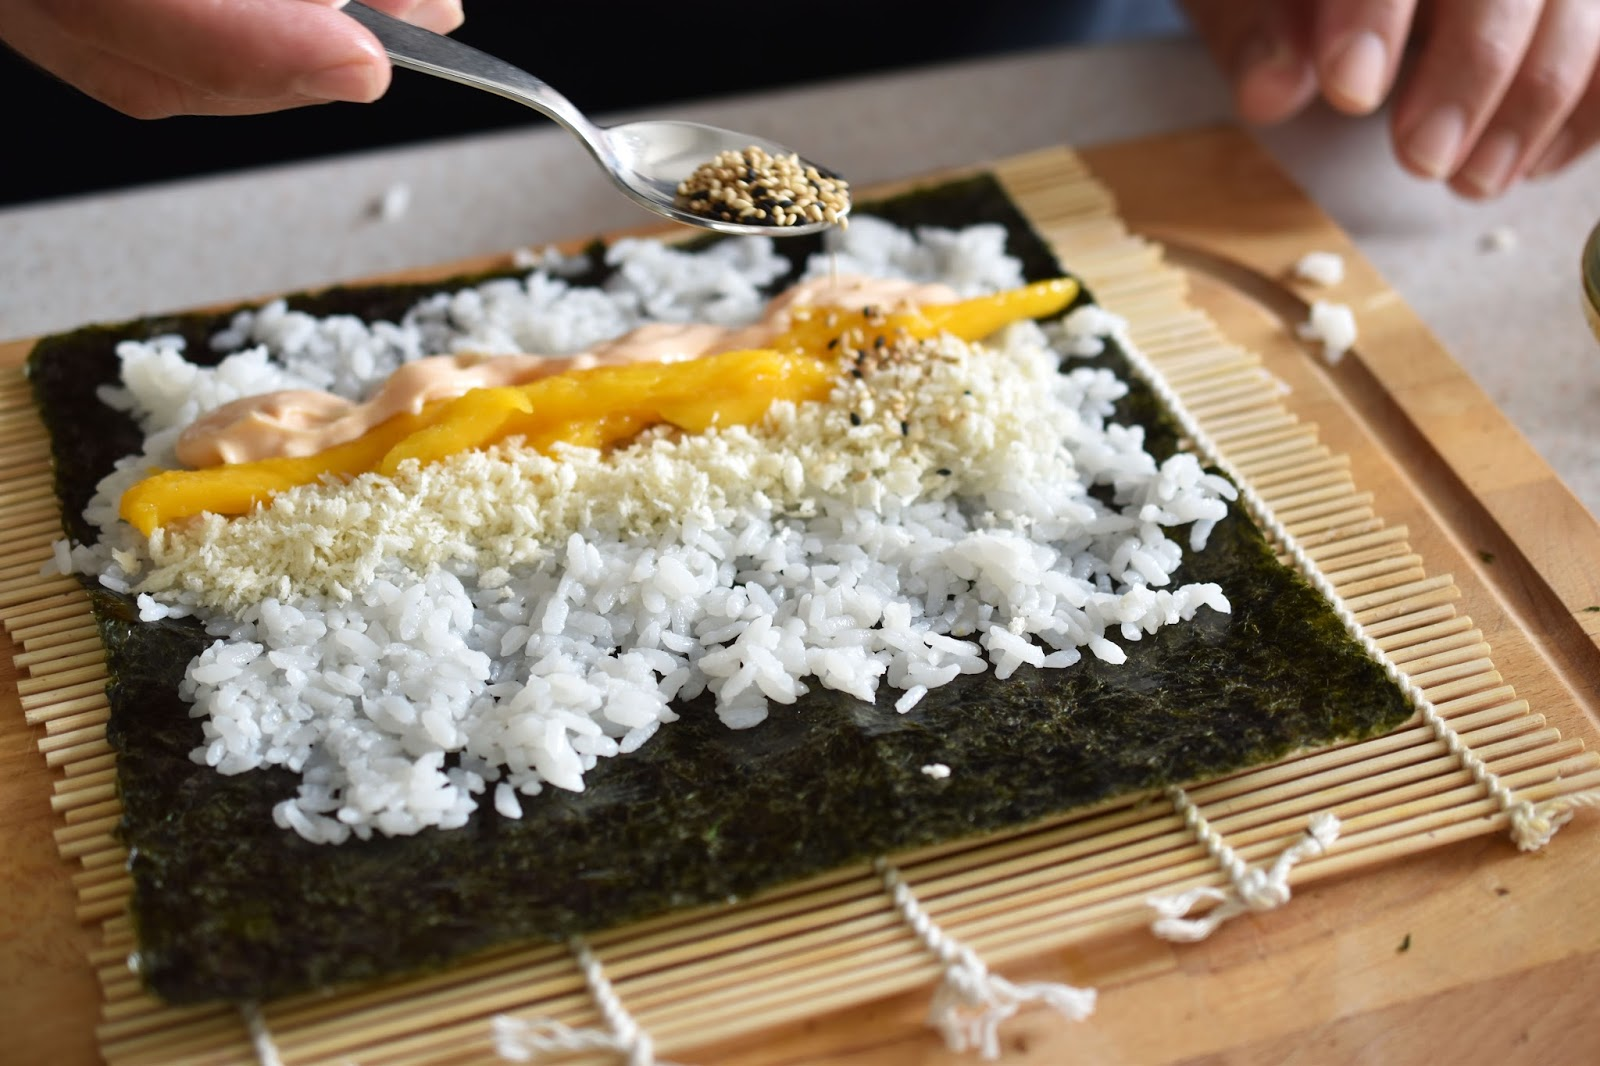 Don't Be Shy With The Toppings  You'll Get A Nice Full Roll If You're  Generous Lay Your Toppings Along The Bottom Third Of The Nori Seaweed So  They End Up